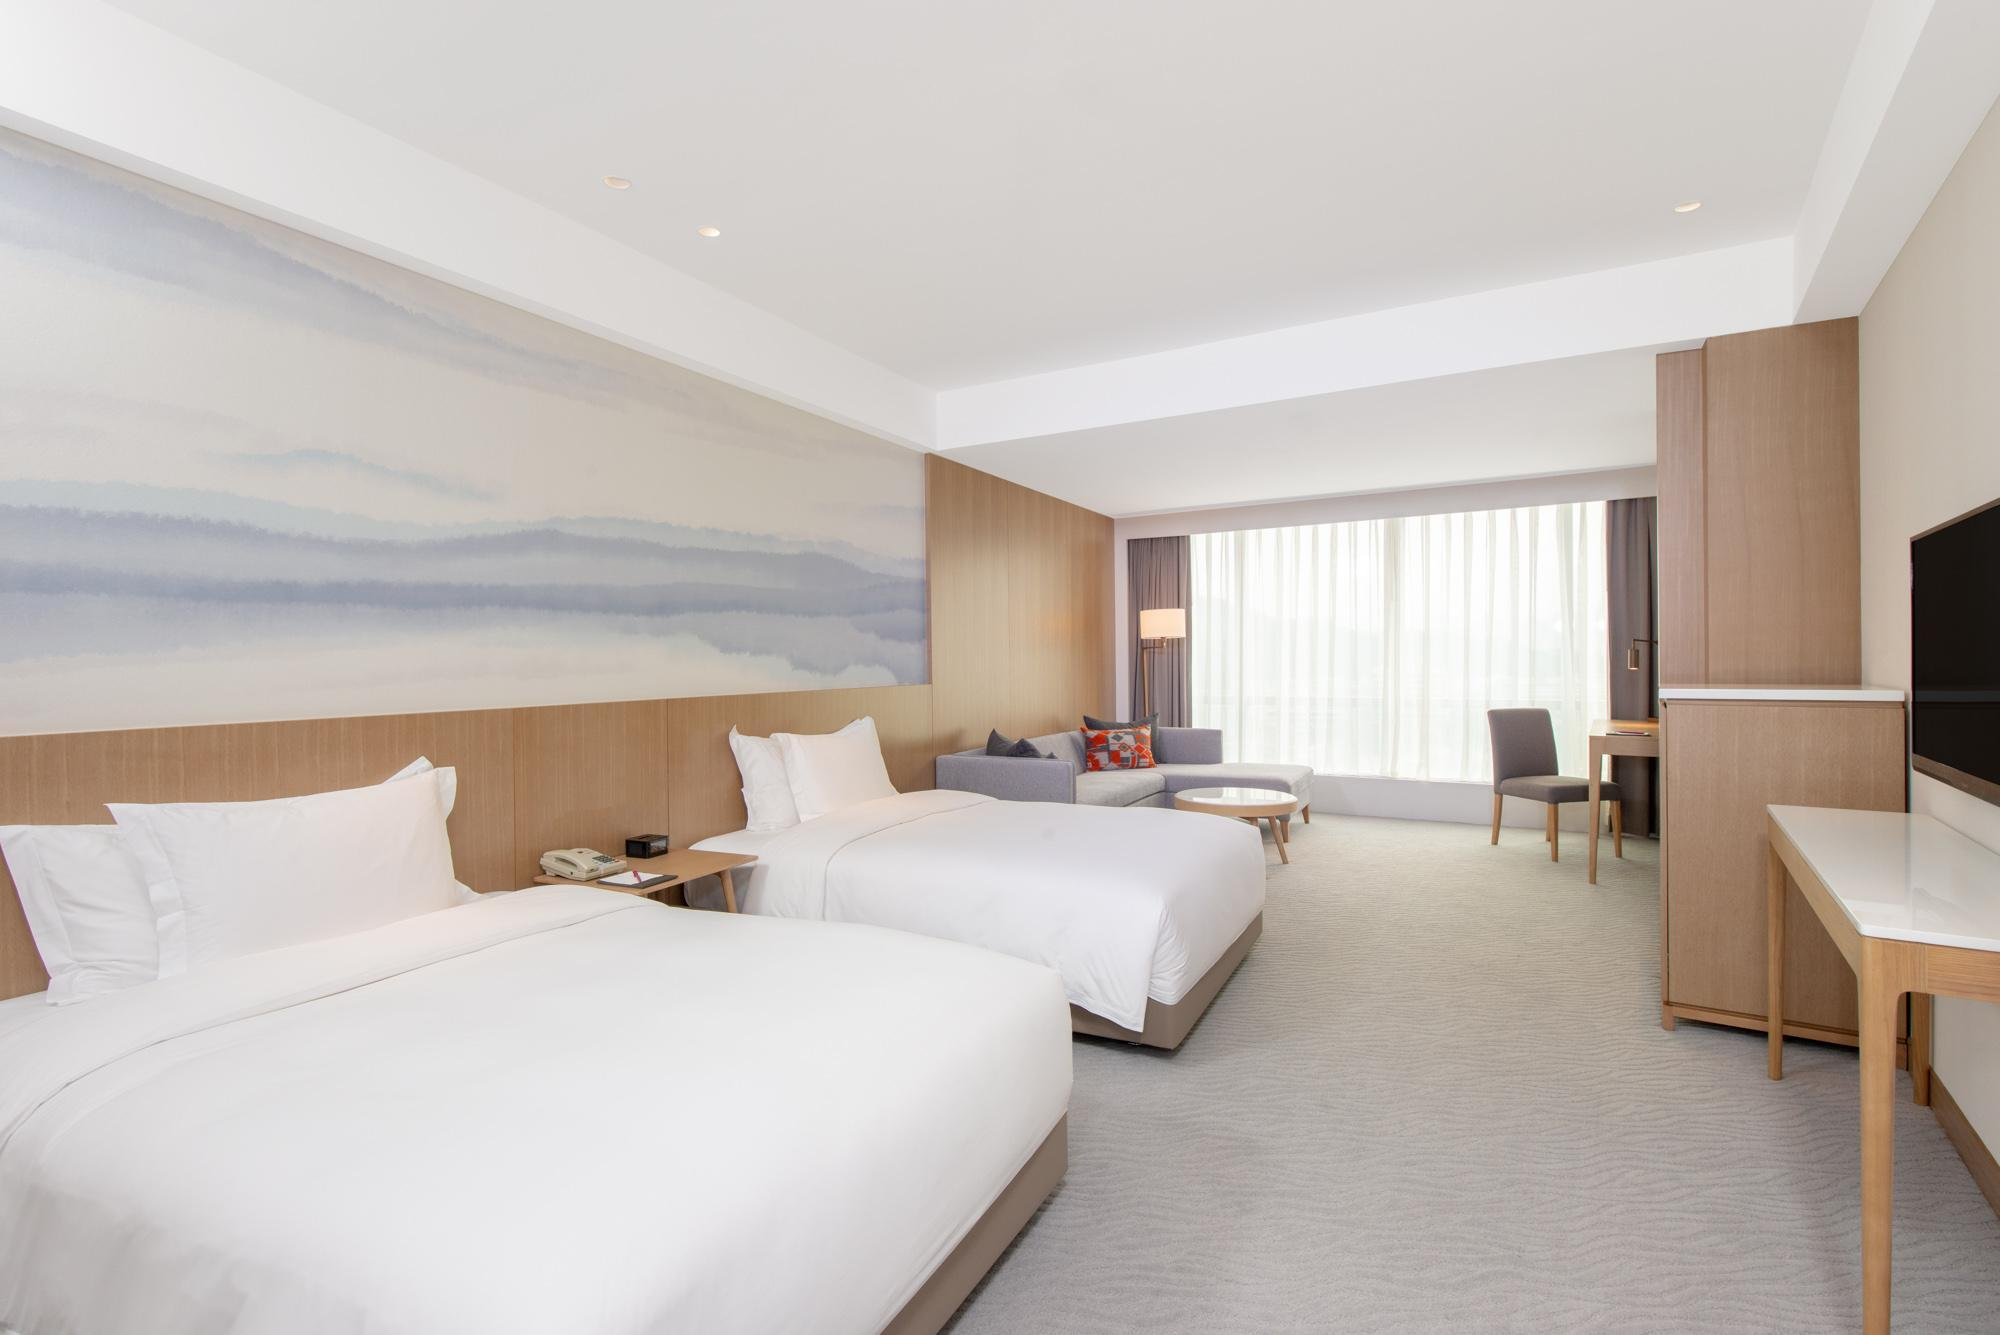 Crowne Plaza luksustuba (Crowne Plaza Superior Room)